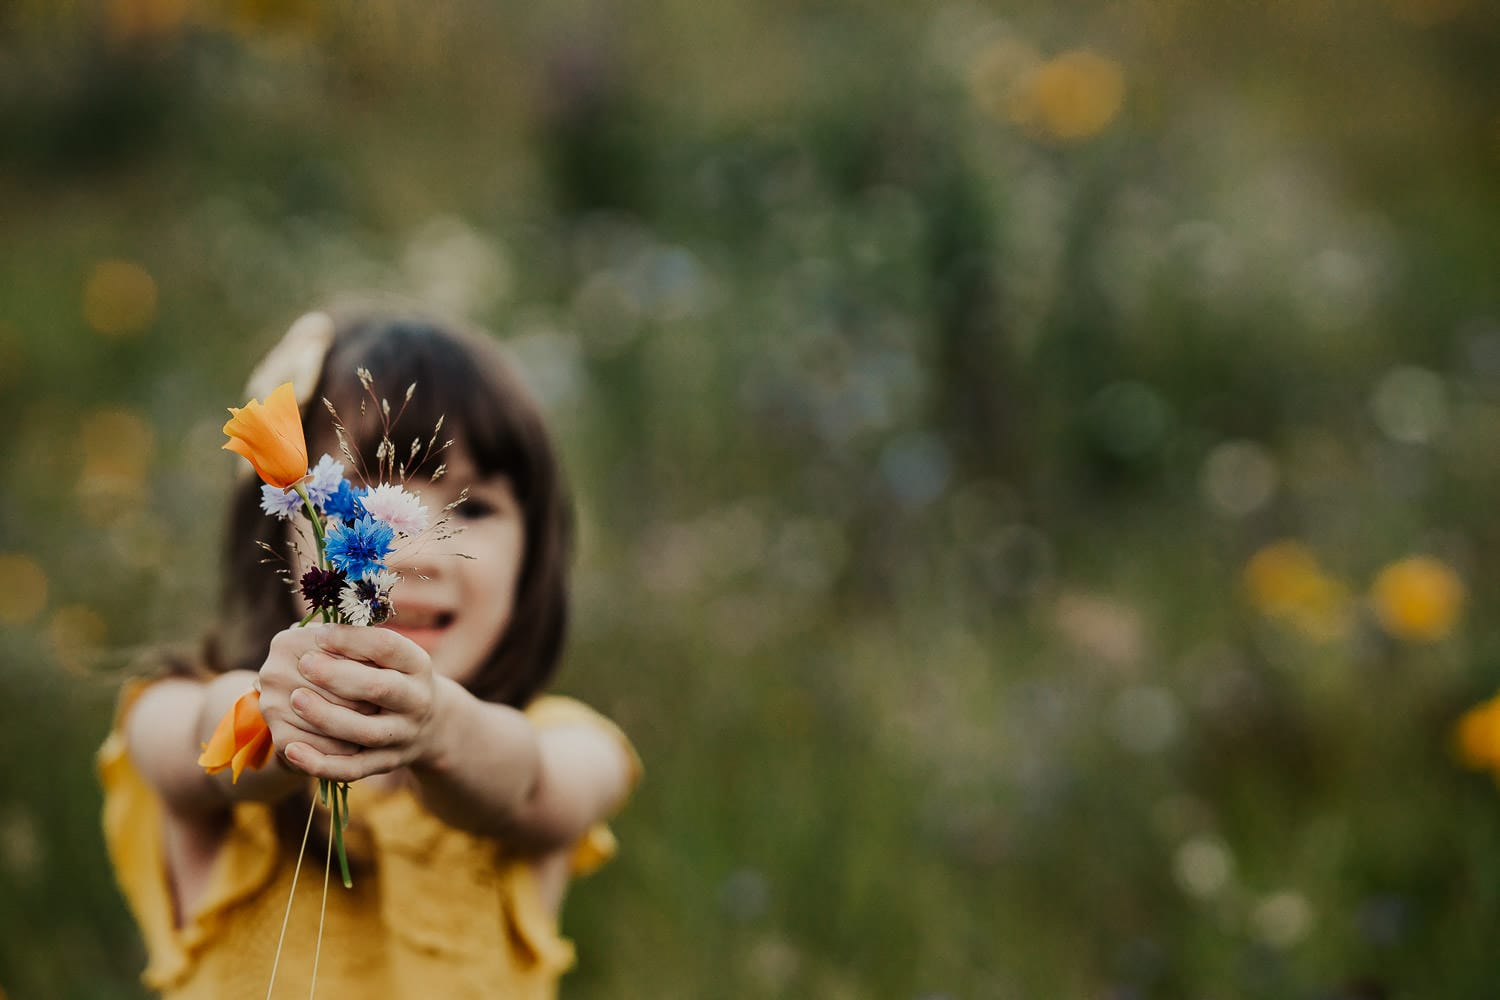 little girl holding a bouquet of flowers up to the camers